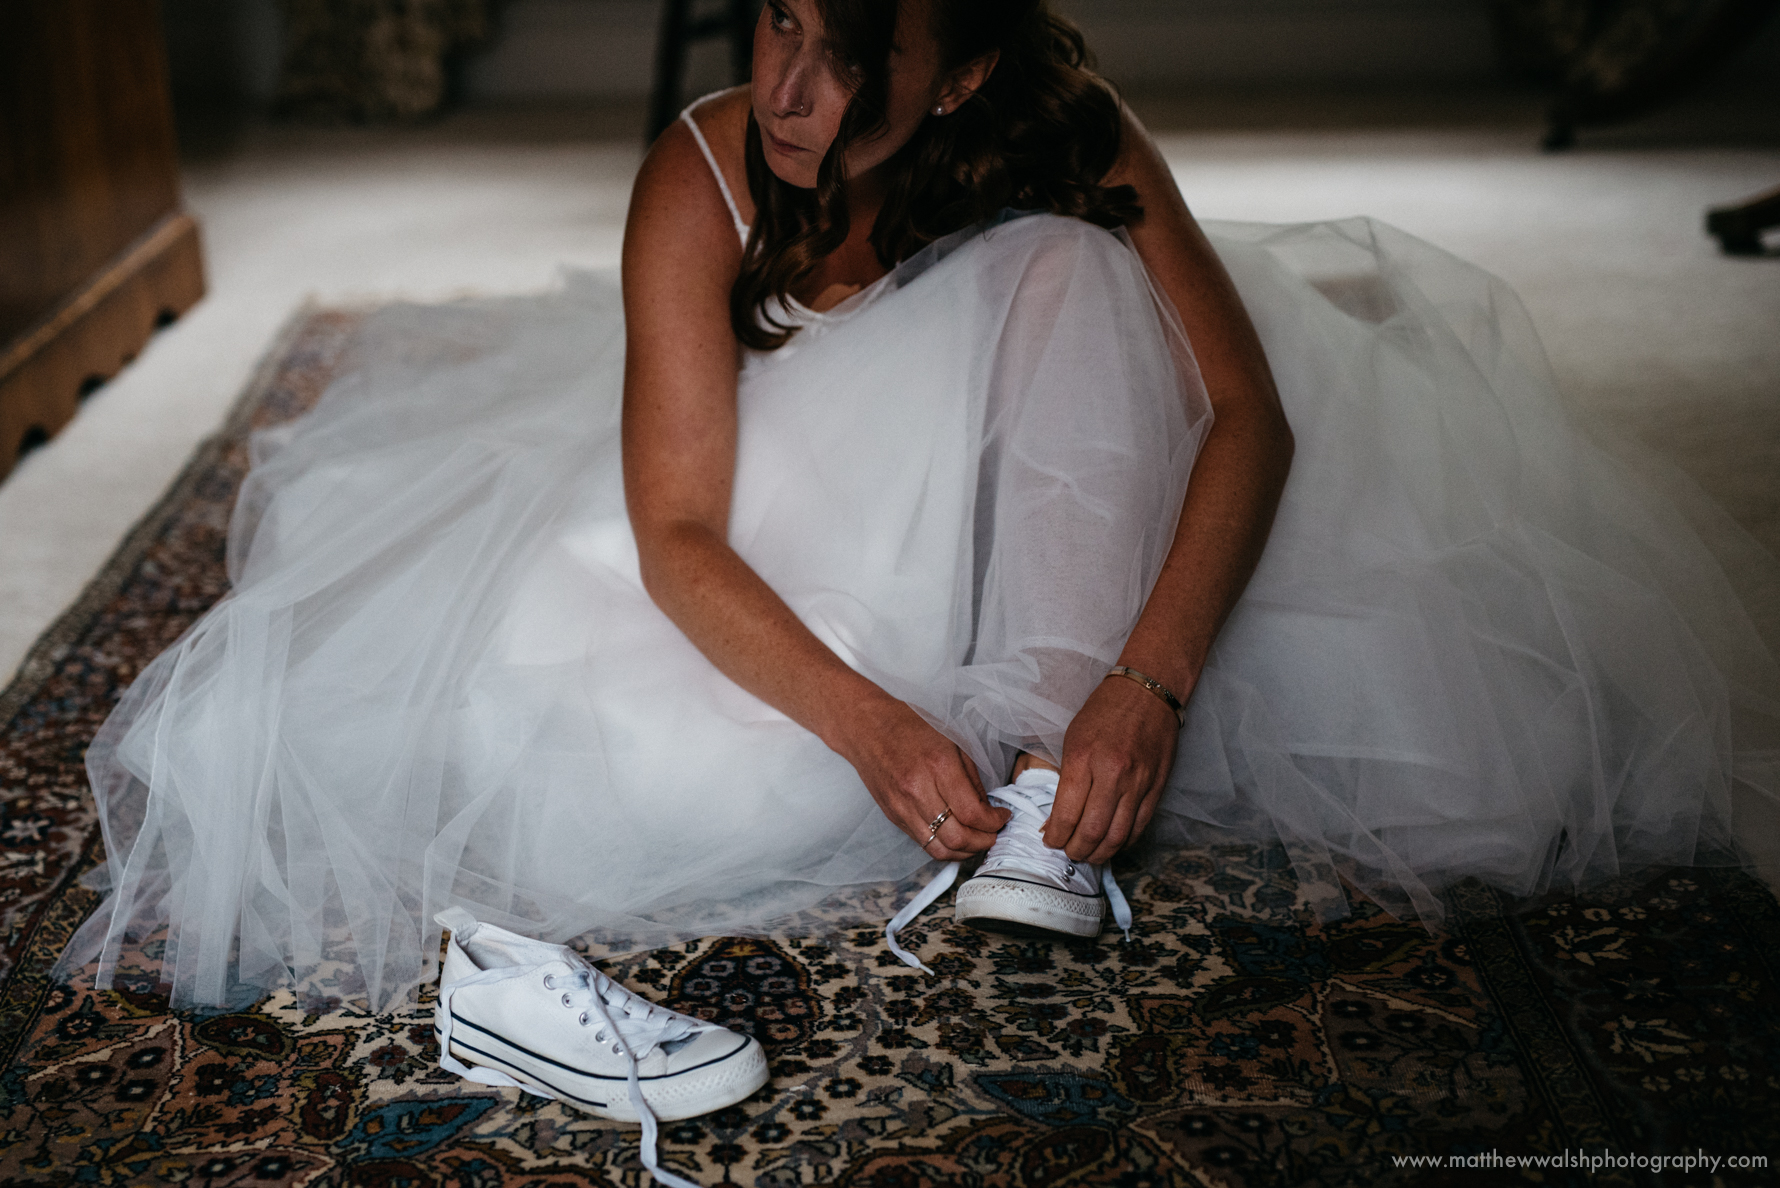 The bride creating a personal touch by ignoring tradition and wearing converse under her dress